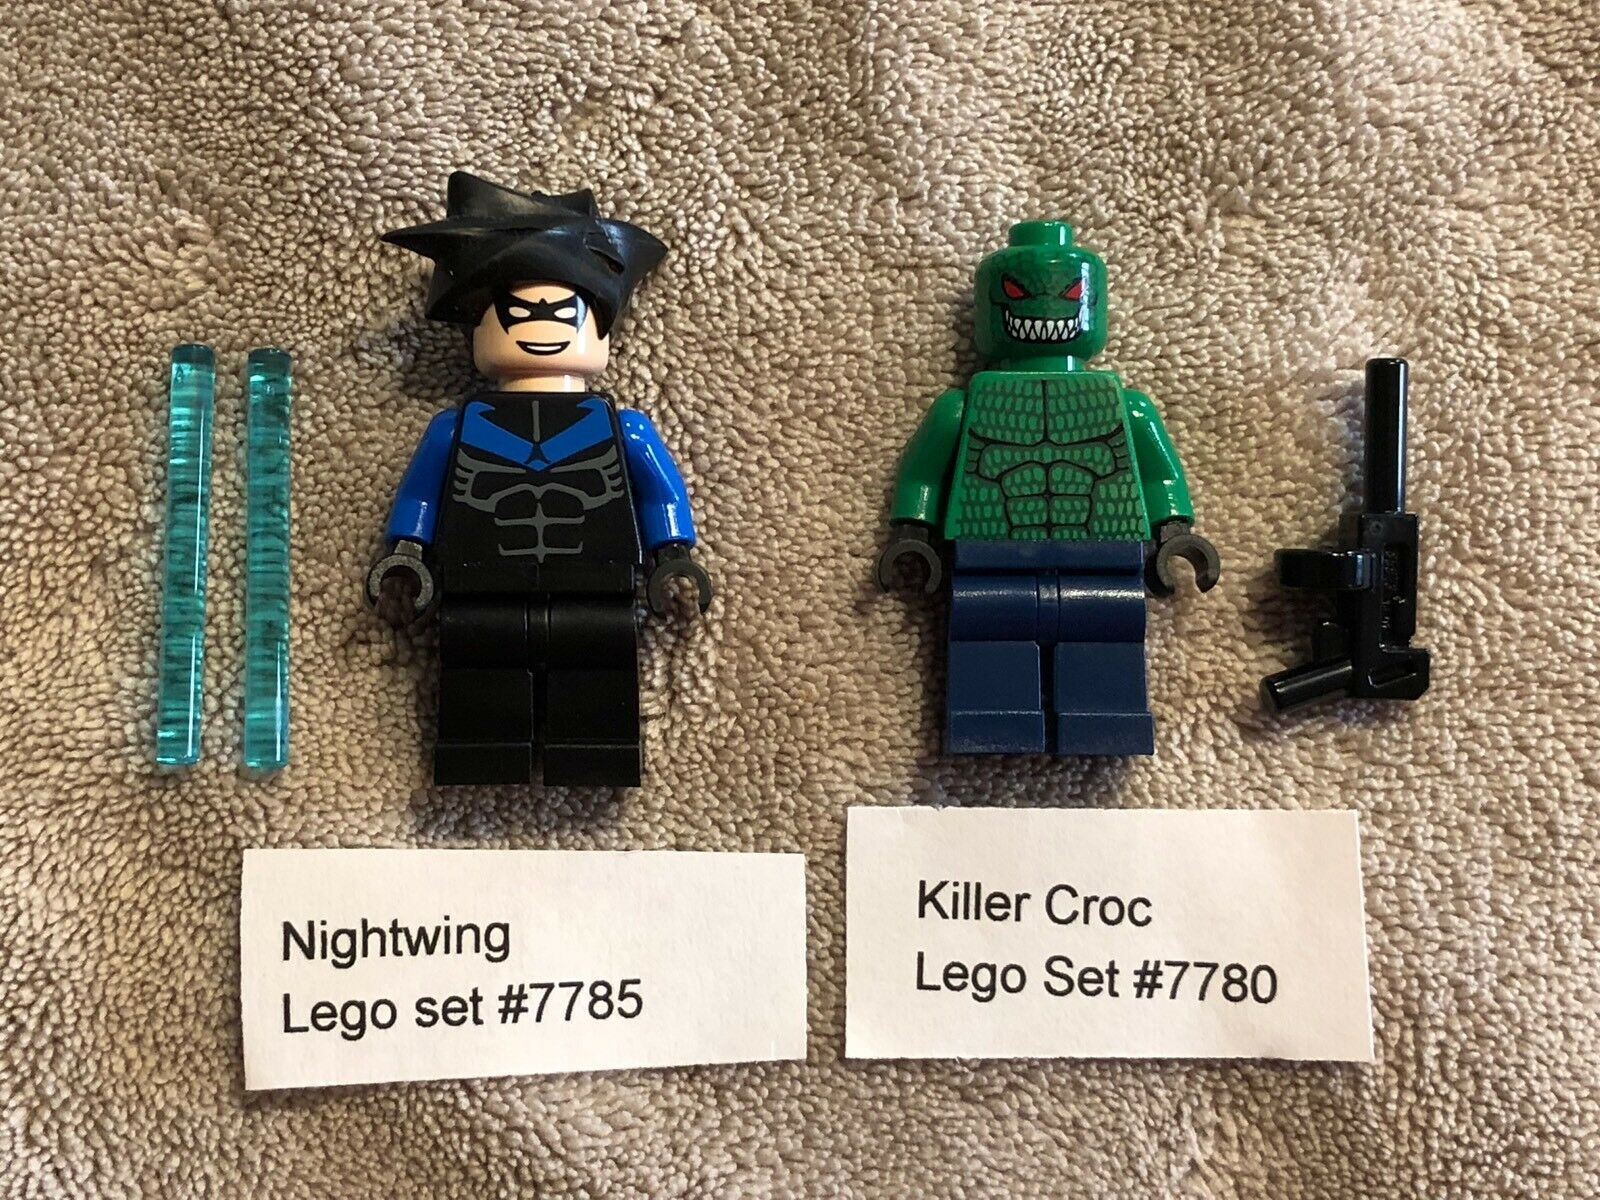 Authentic LEGO NIGHTWING & KILLER CROC Minifigures DC Super Heroes 7785 & 7780